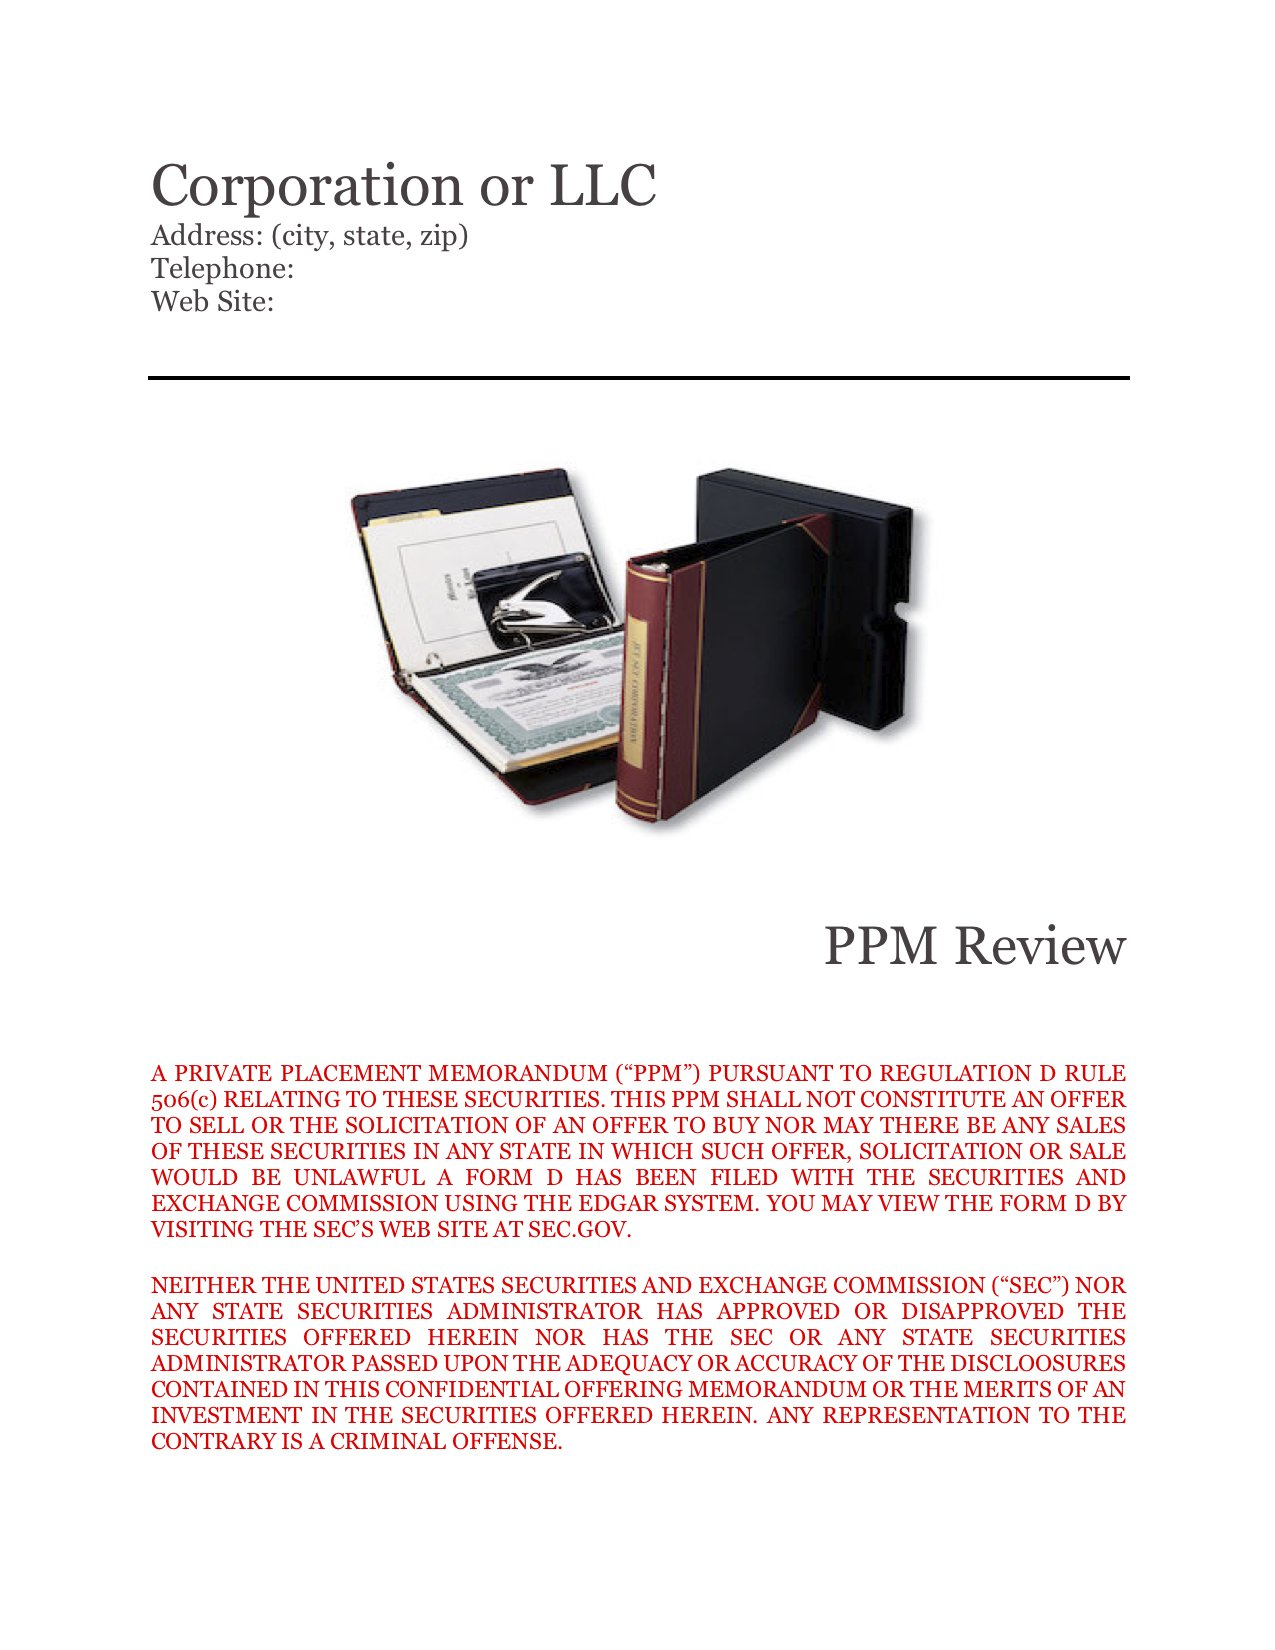 ppm Review